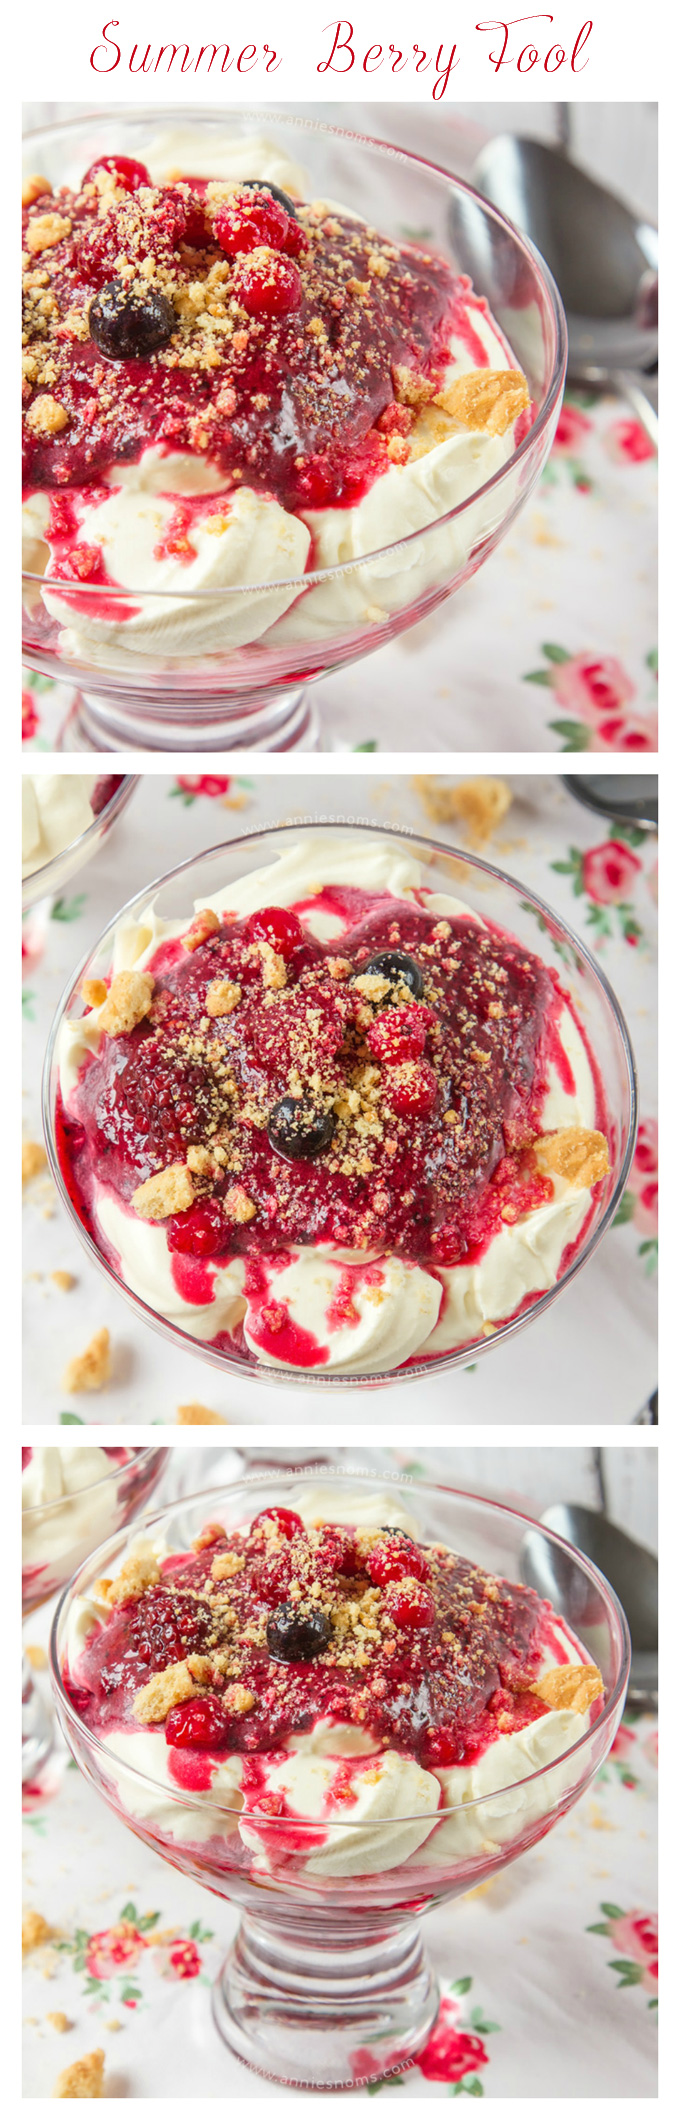 A quick and easy, no-bake dessert made with sweetened whipped cream, a mix of luscious Summer berries and biscuit crumbs. Perfect to make-ahead of time, everyone will fall in love with these creamy, refreshing pots of heaven!